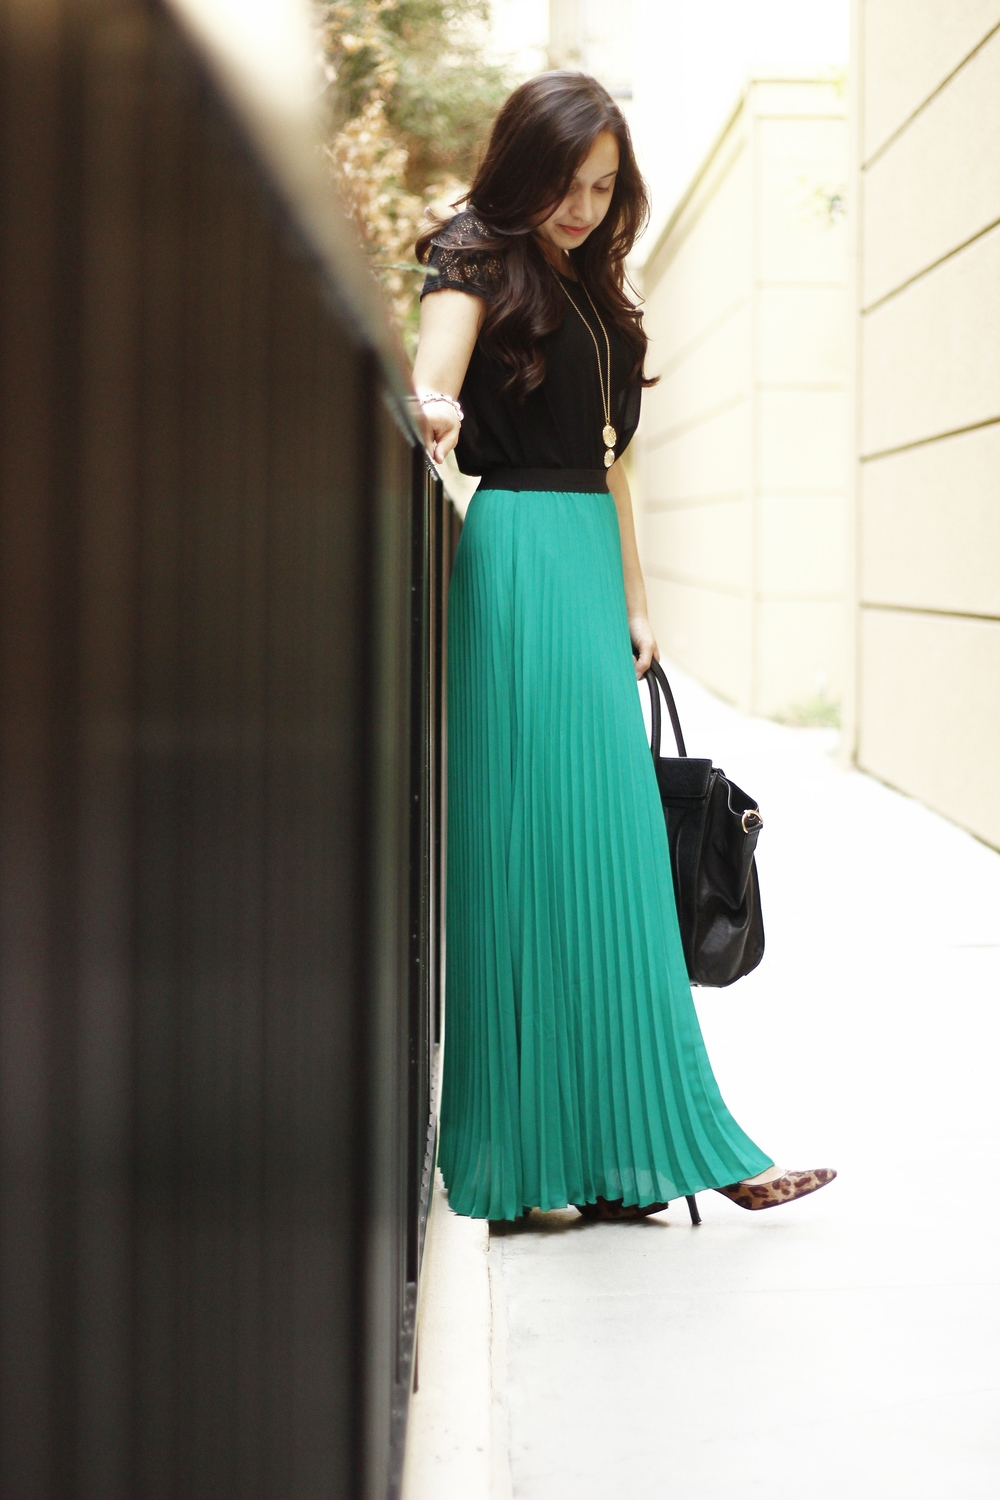 Fall fashion with flowing pleated maxi skirt with leopard heels and lace blouse